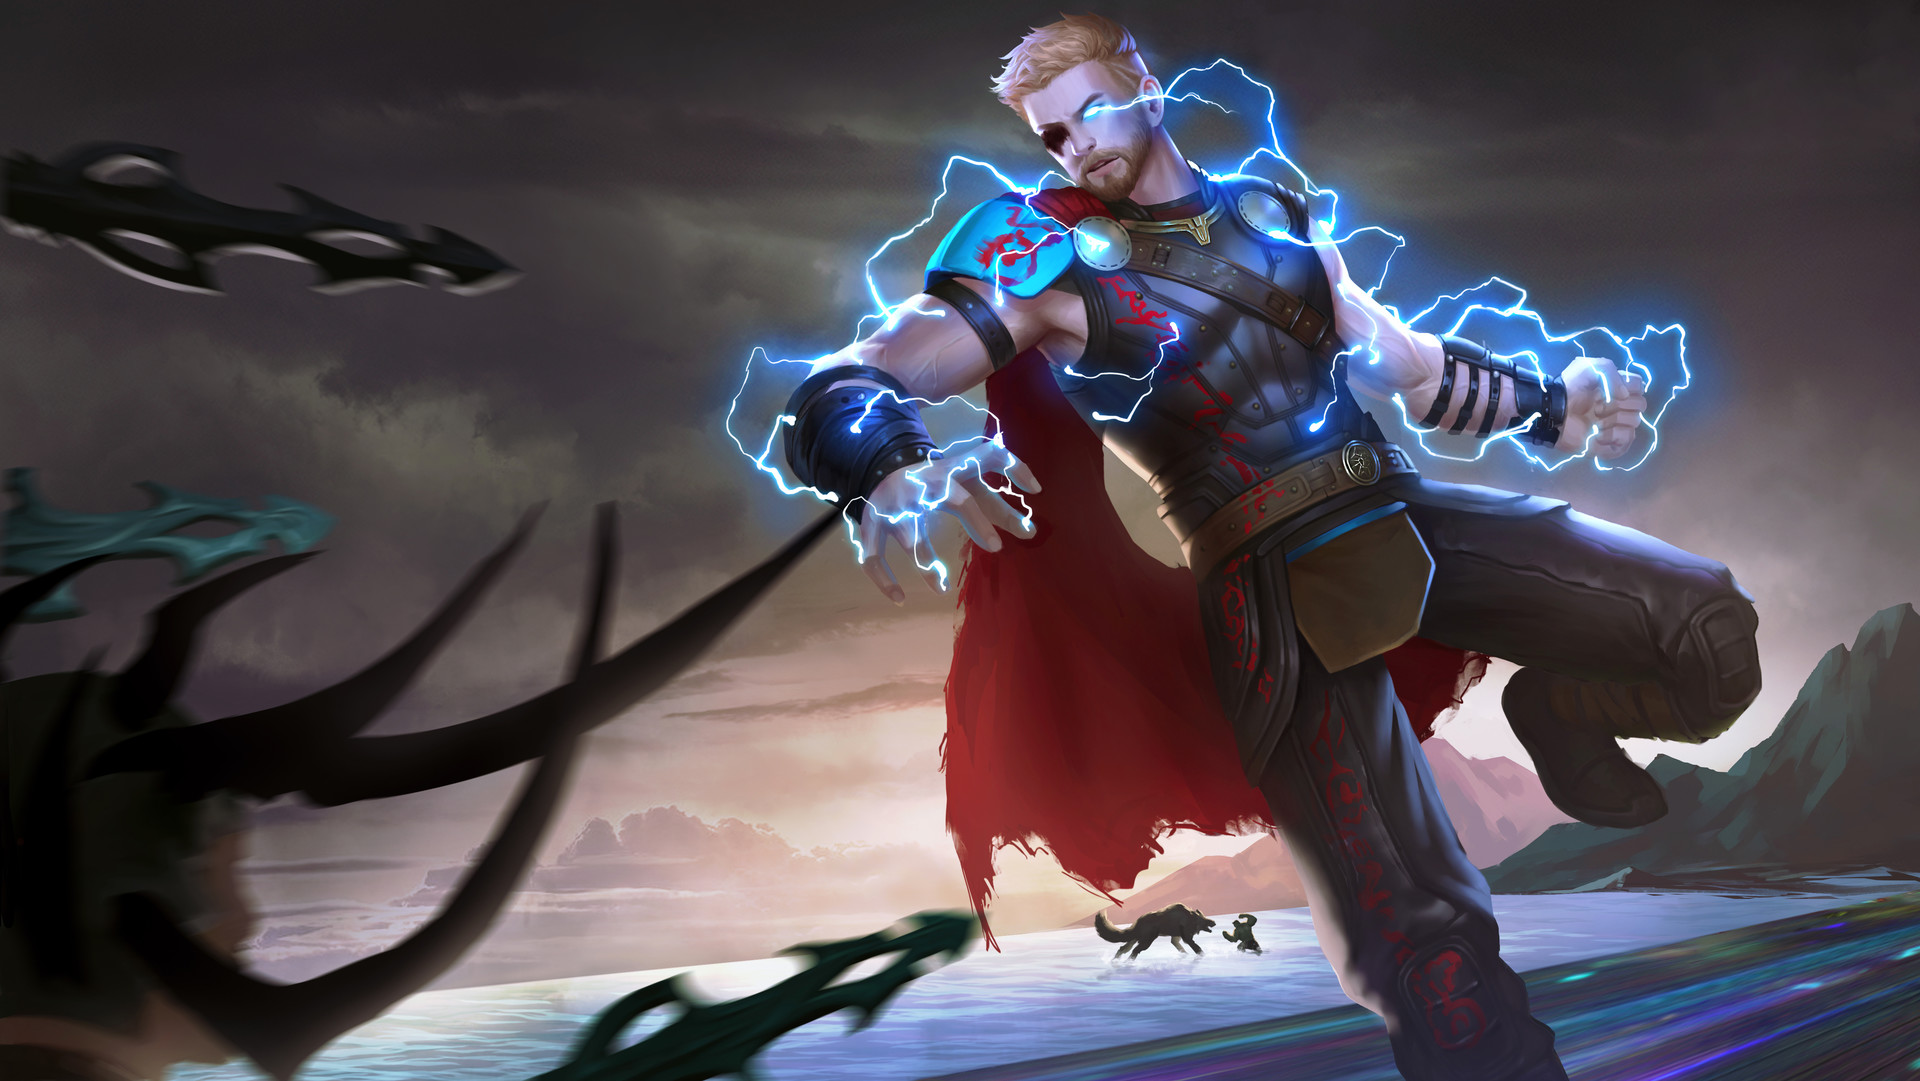 Thor ragnarok hd wallpapers pictures images - Thor art wallpaper ...